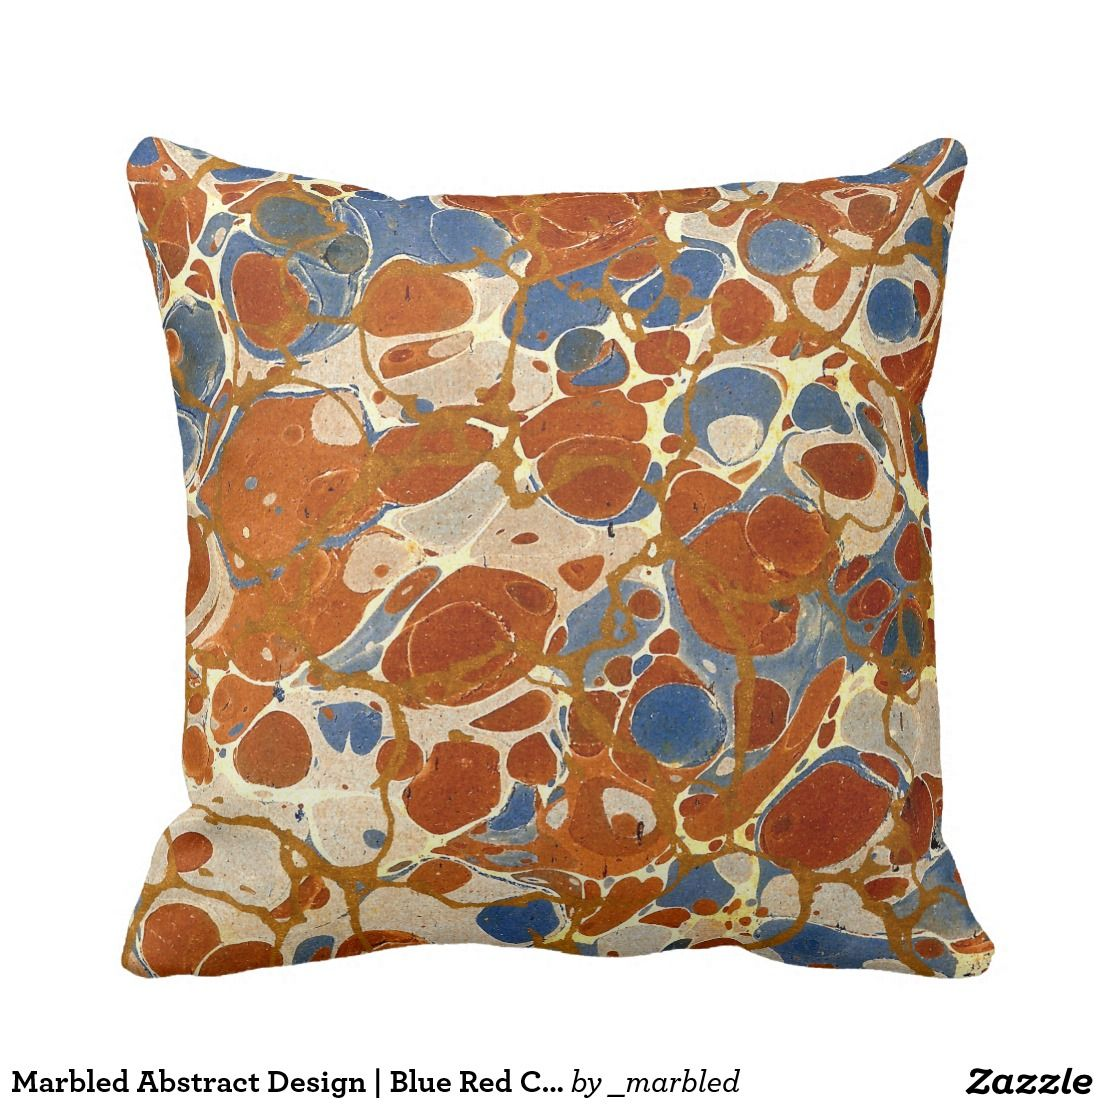 Decorative pillows with blue brown and yellow - Marbled Abstract Design Blue Red Creme Yellow Throw Pillows